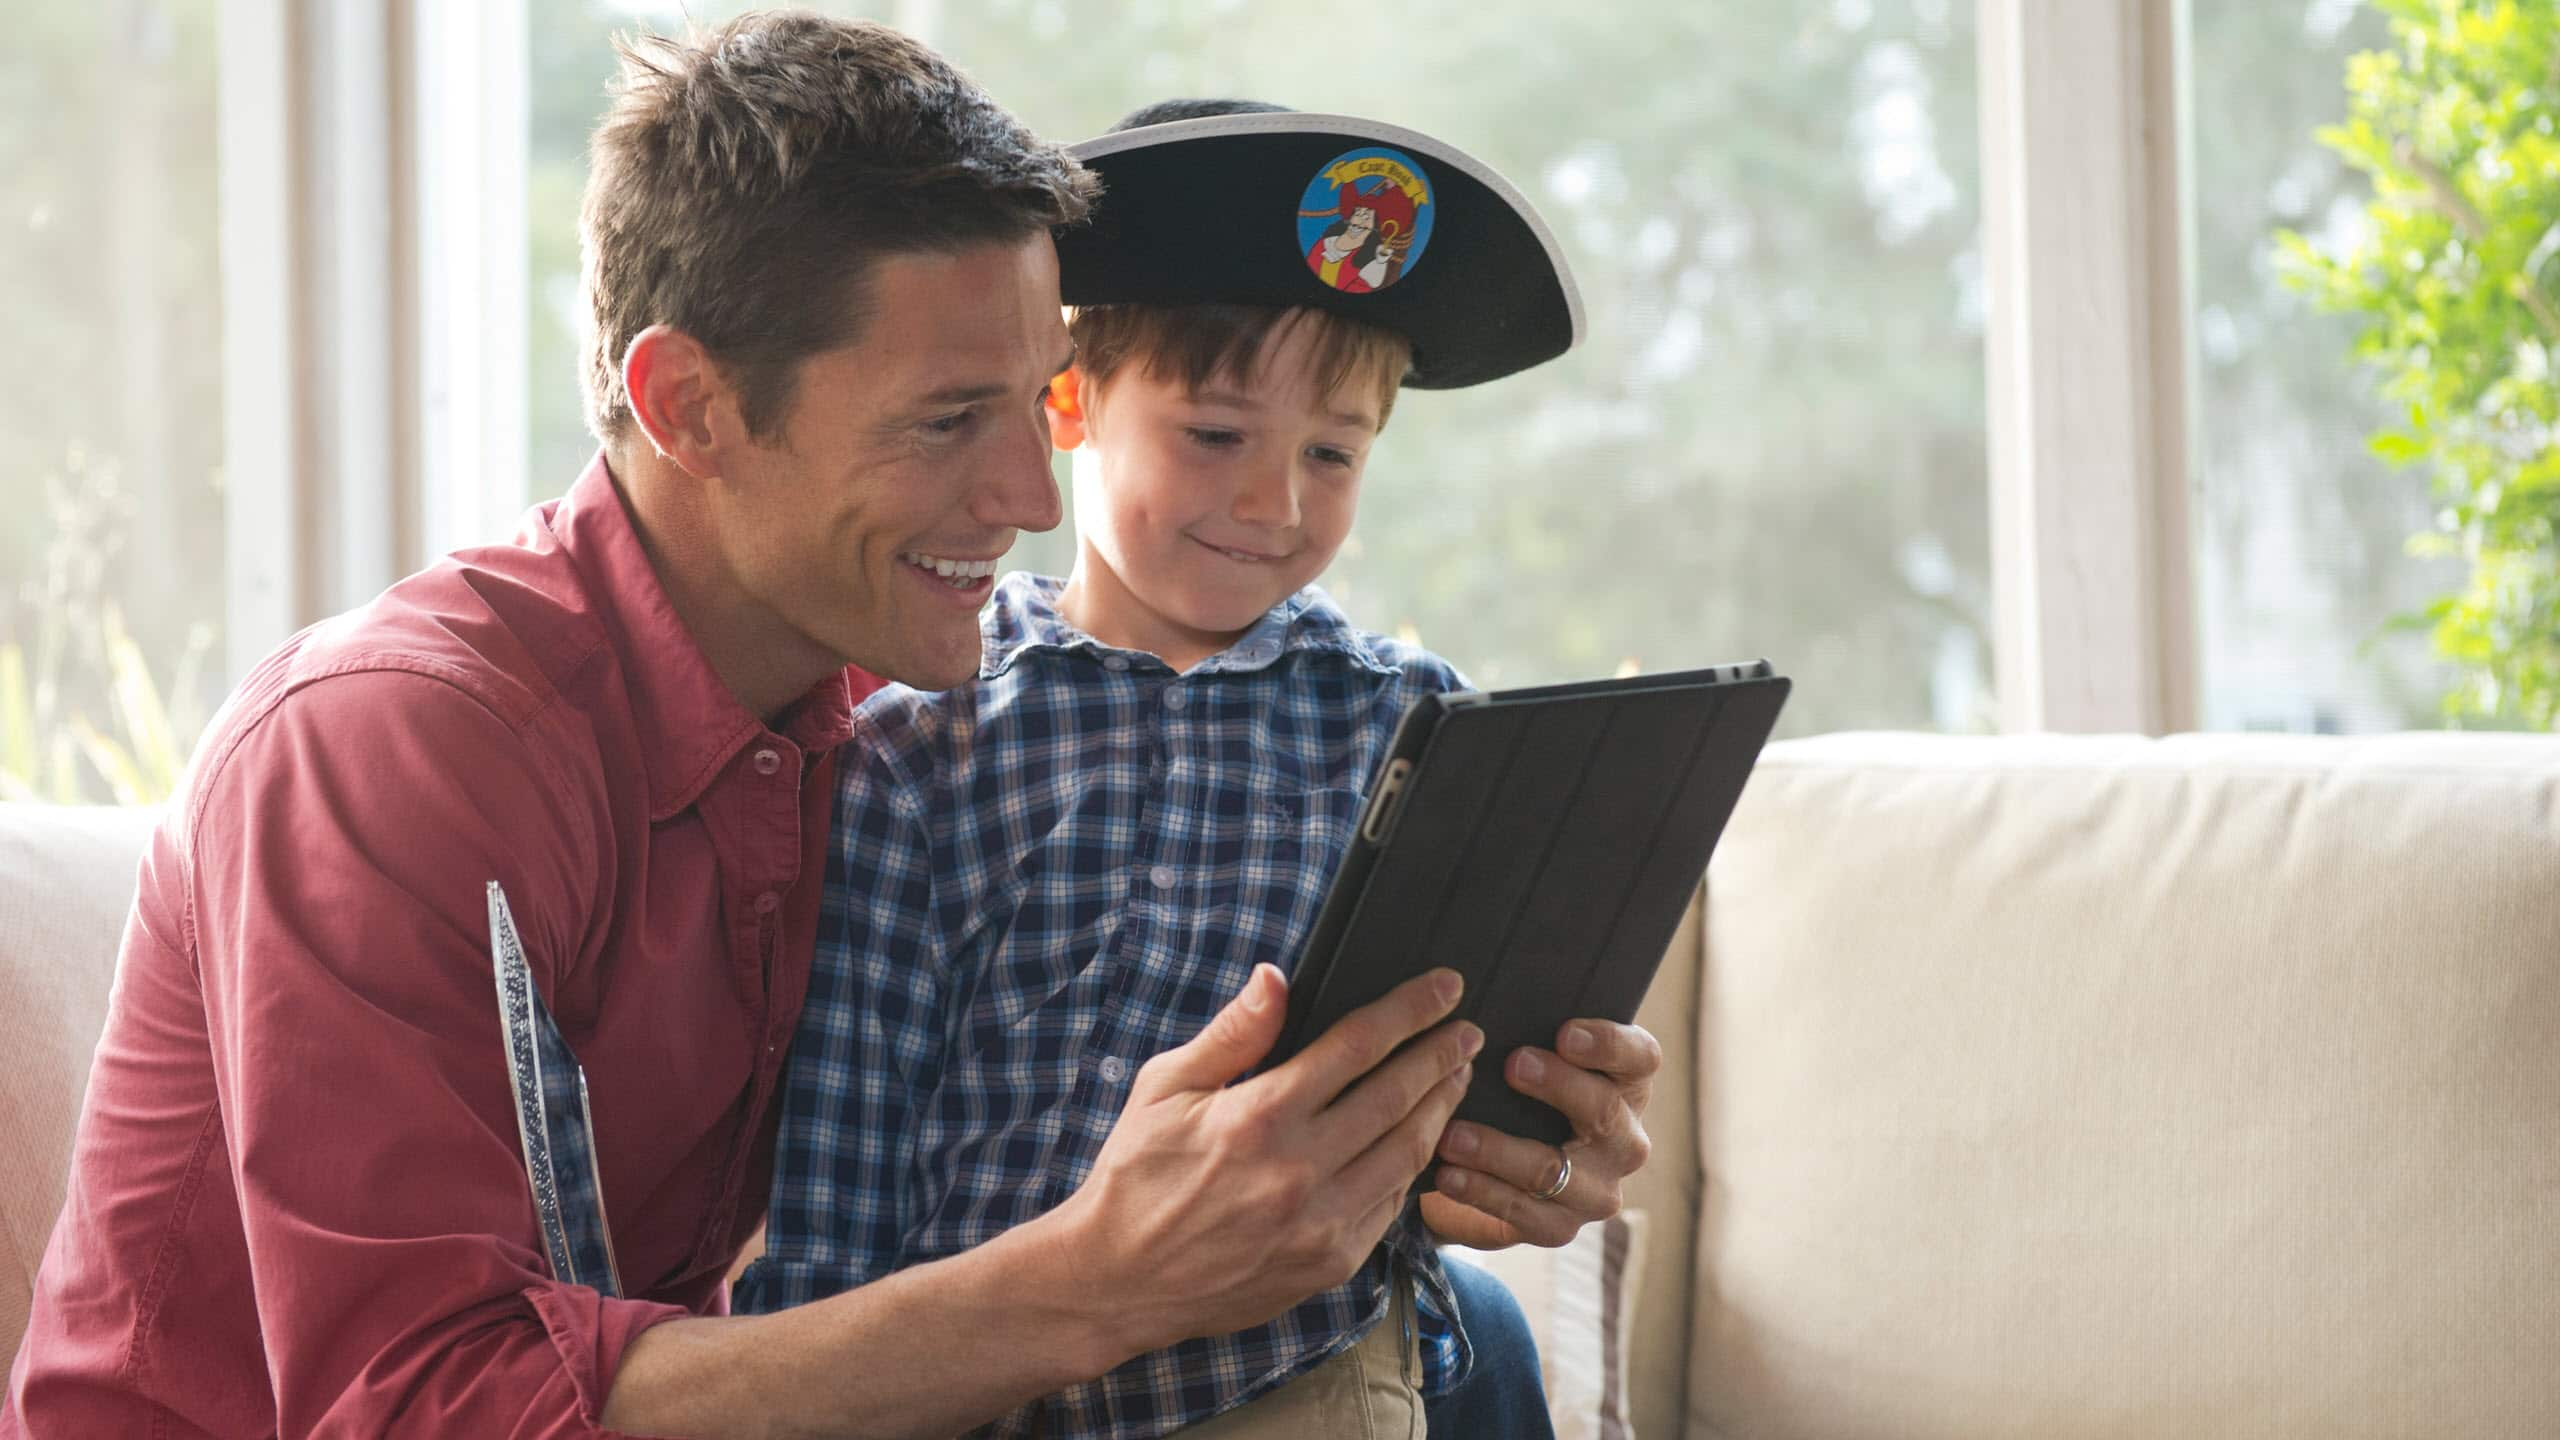 A boy wearing a pirate hat sitting with his father, reading a tablet device together